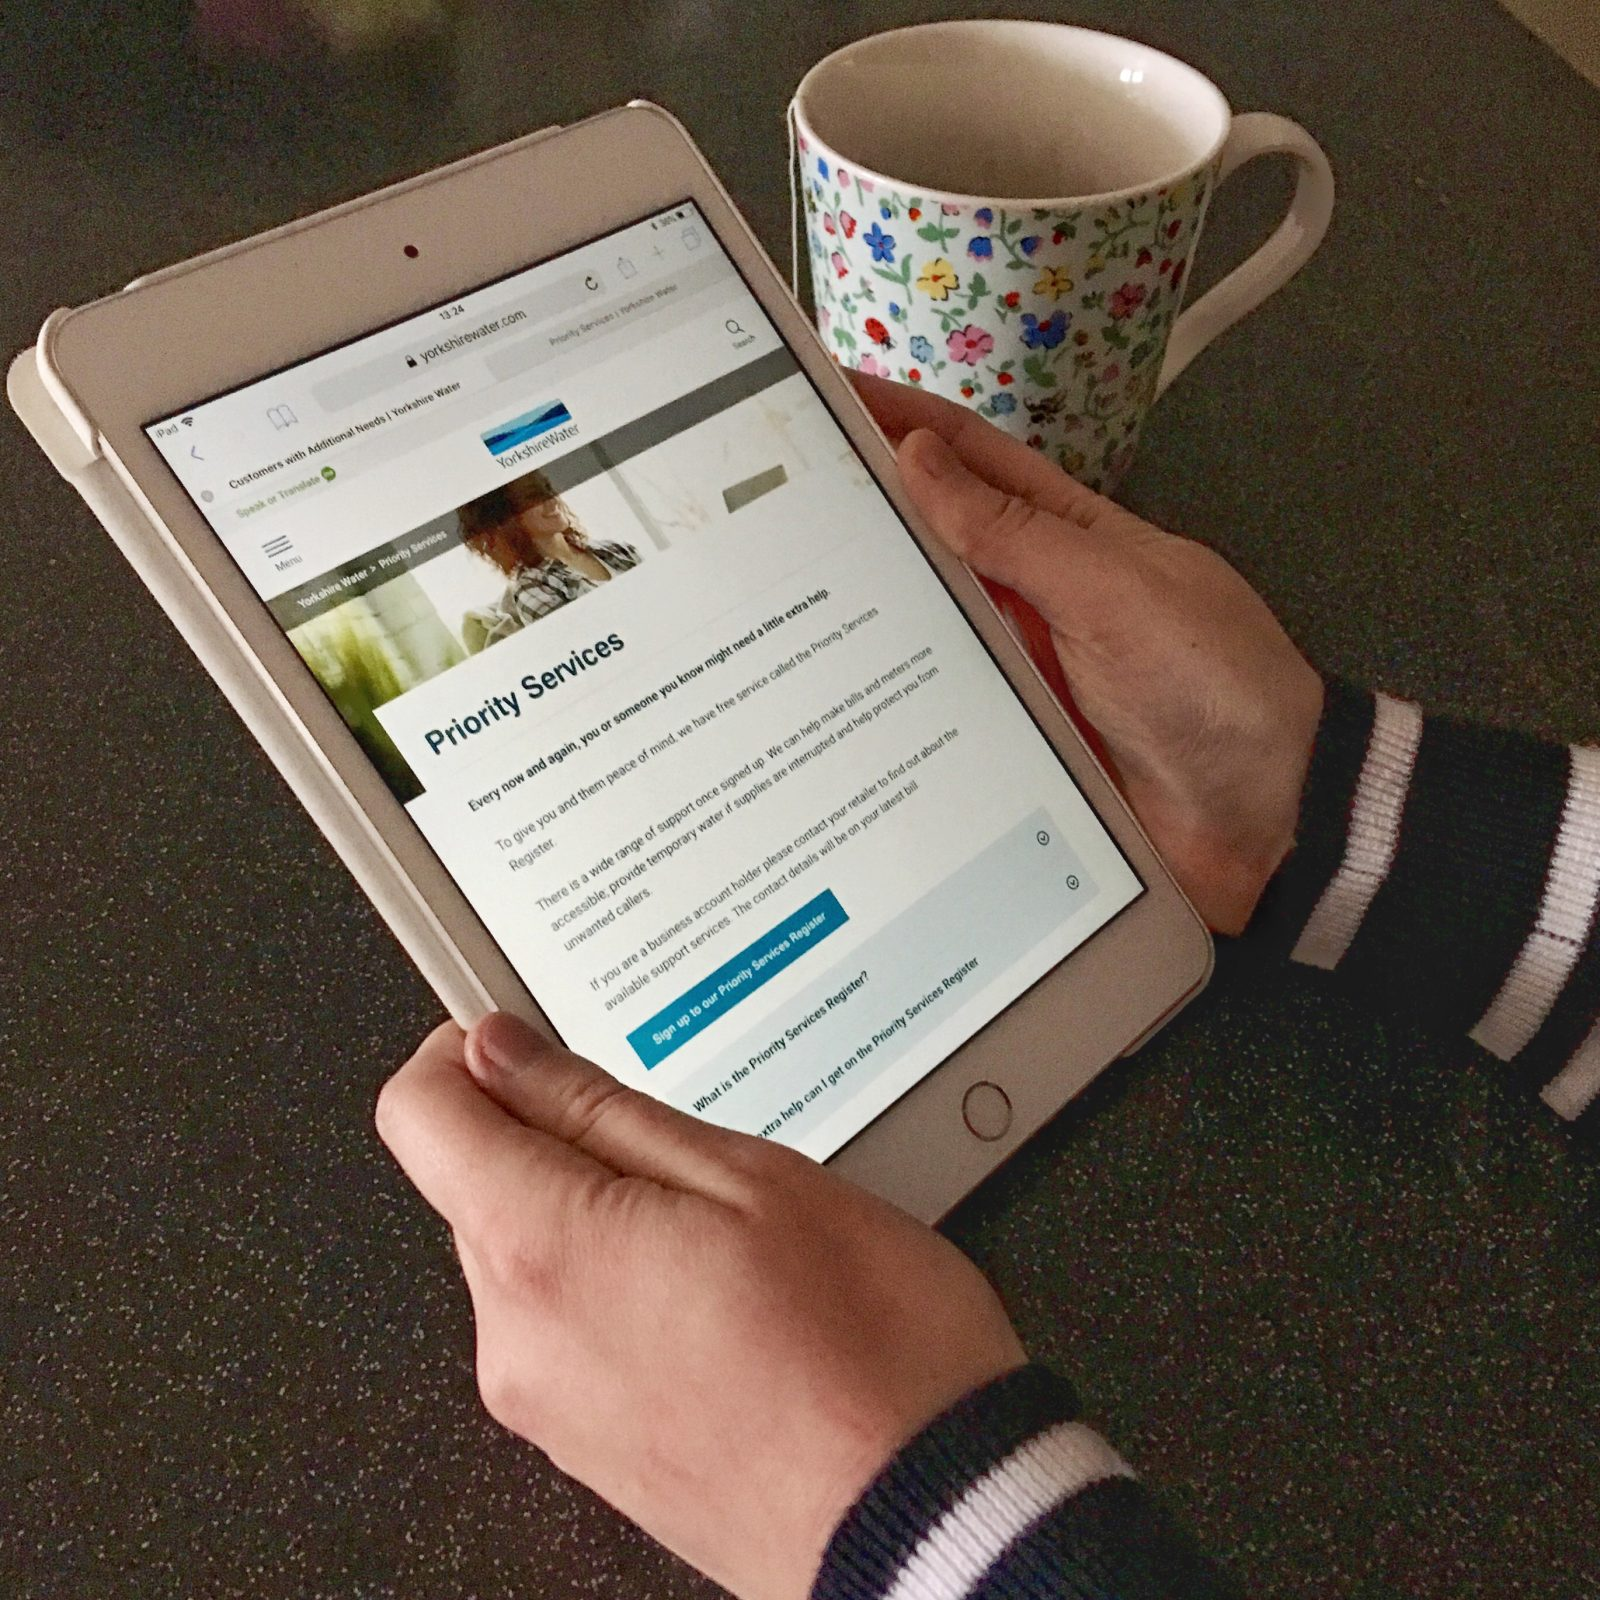 hands holding ipad displaying yorkshire water priority services campaign page, with cup of tea in background